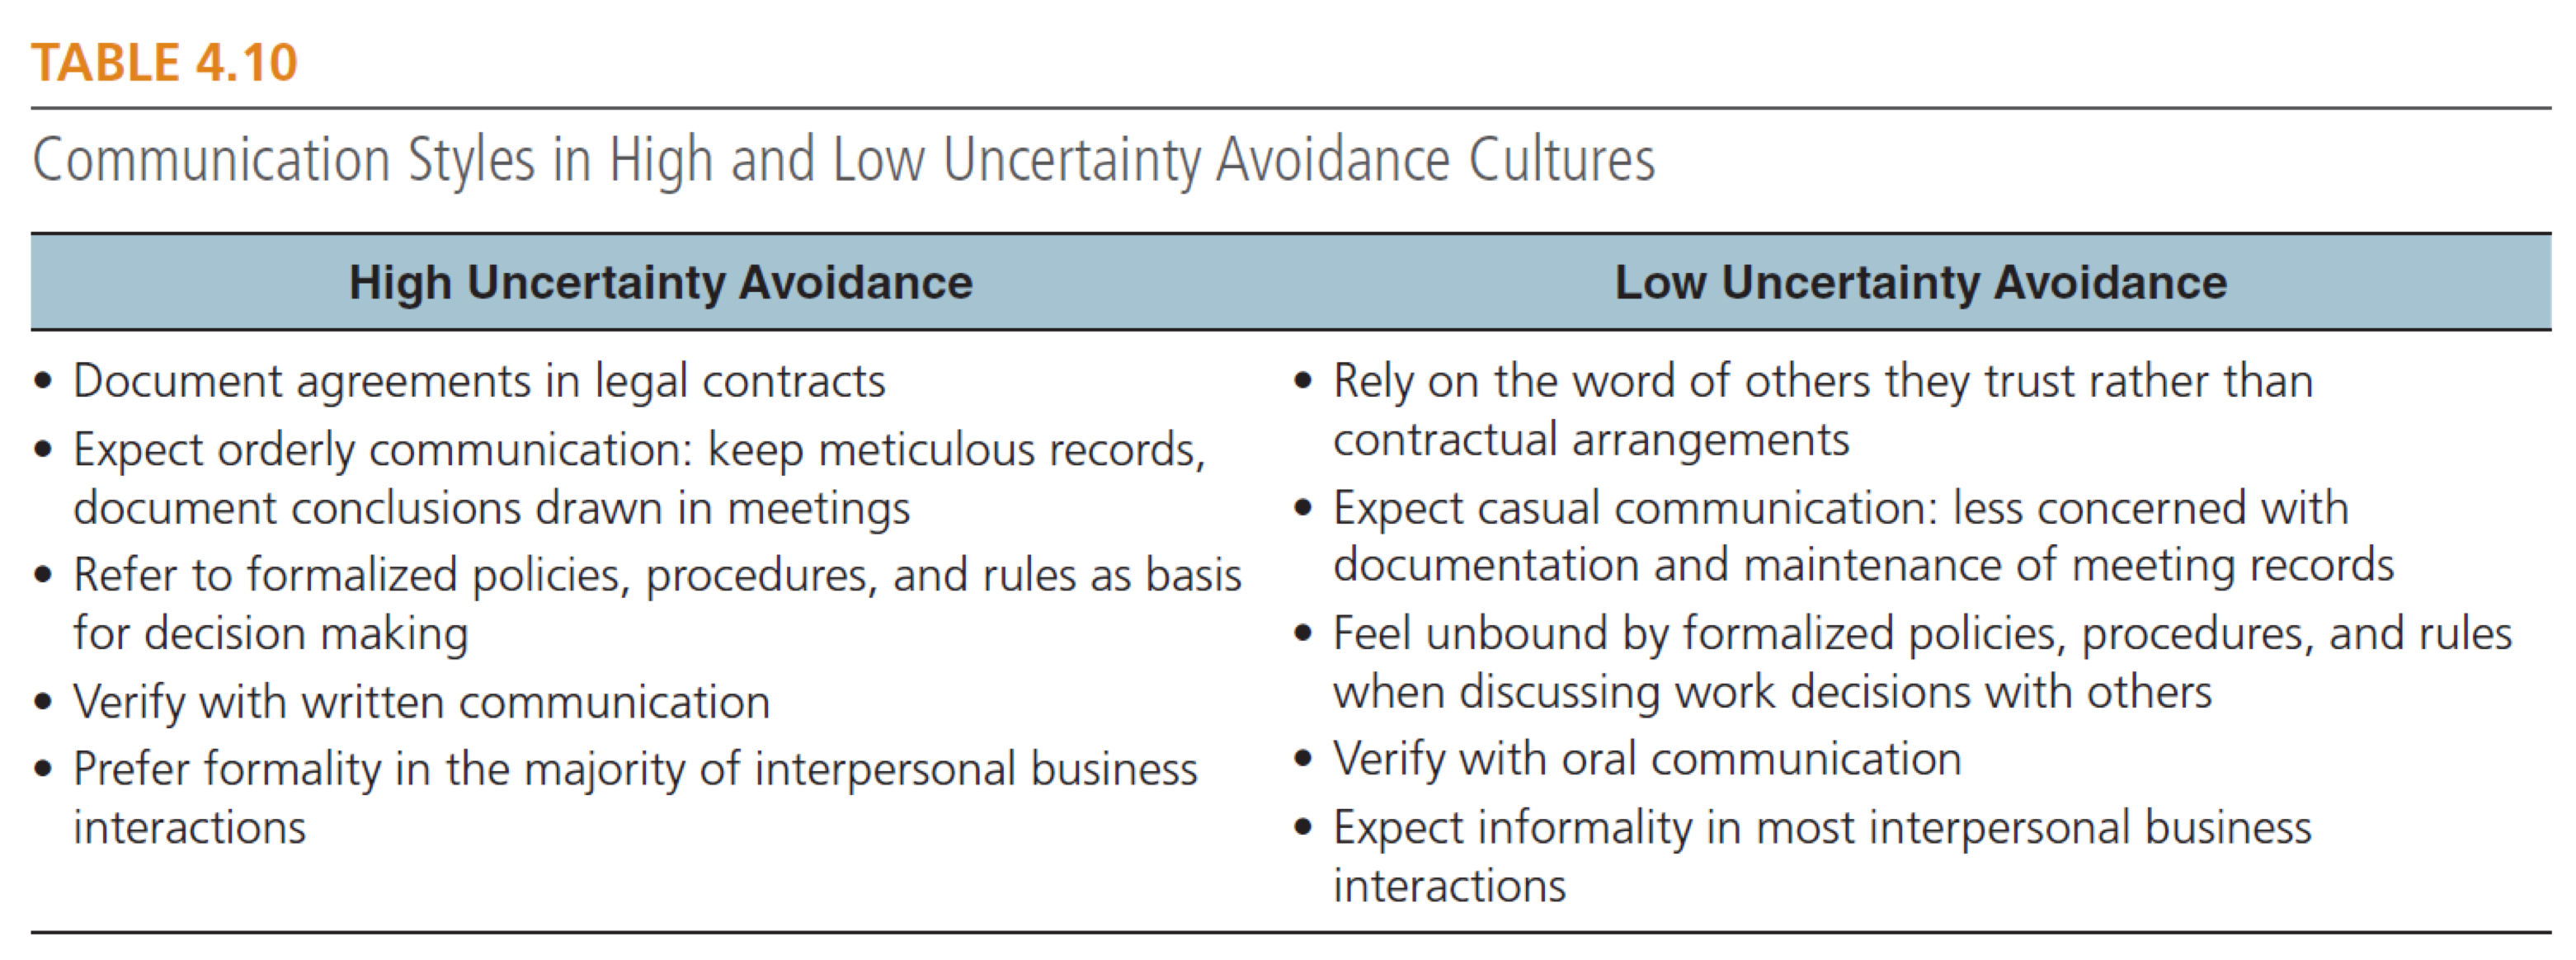 Communication Styles in High and Low Uncertainty Avoidance Cultures